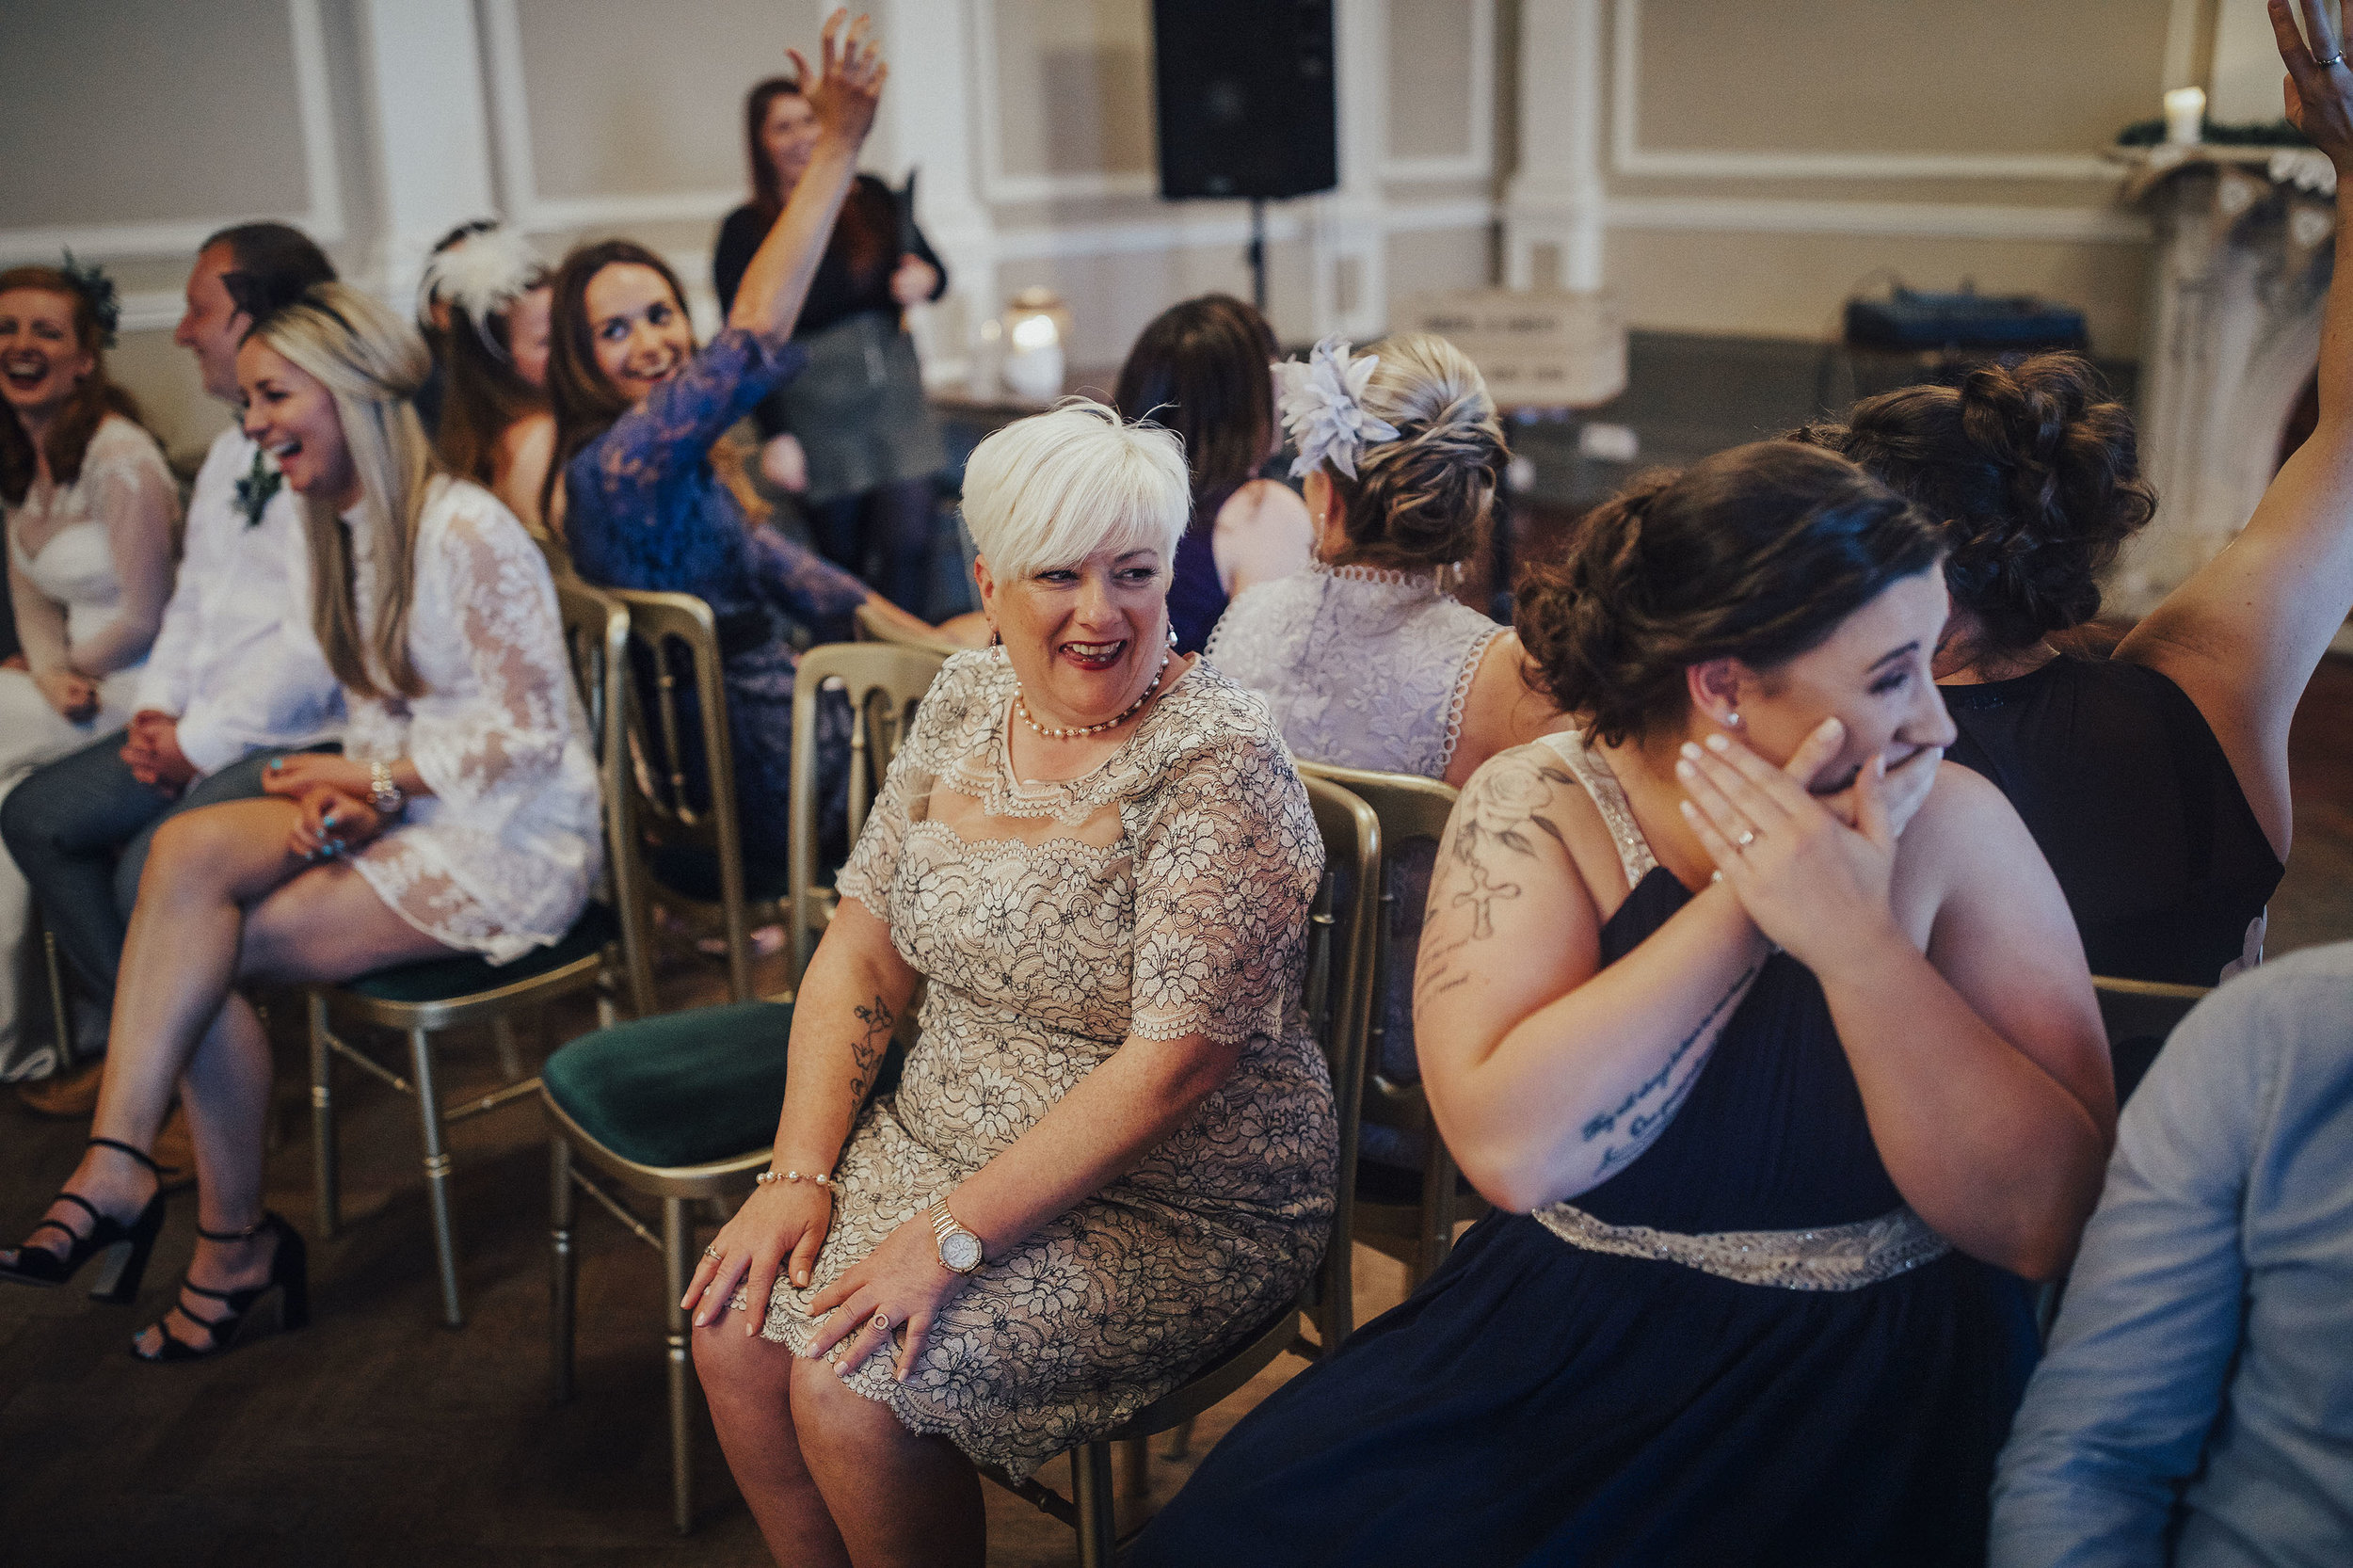 SAME_SEX_WEDDING_PHOTOGRAPHER_SLOANS_GLASGOW_PJ_PHILLIPS_PHOTOGRAPHY_89.jpg